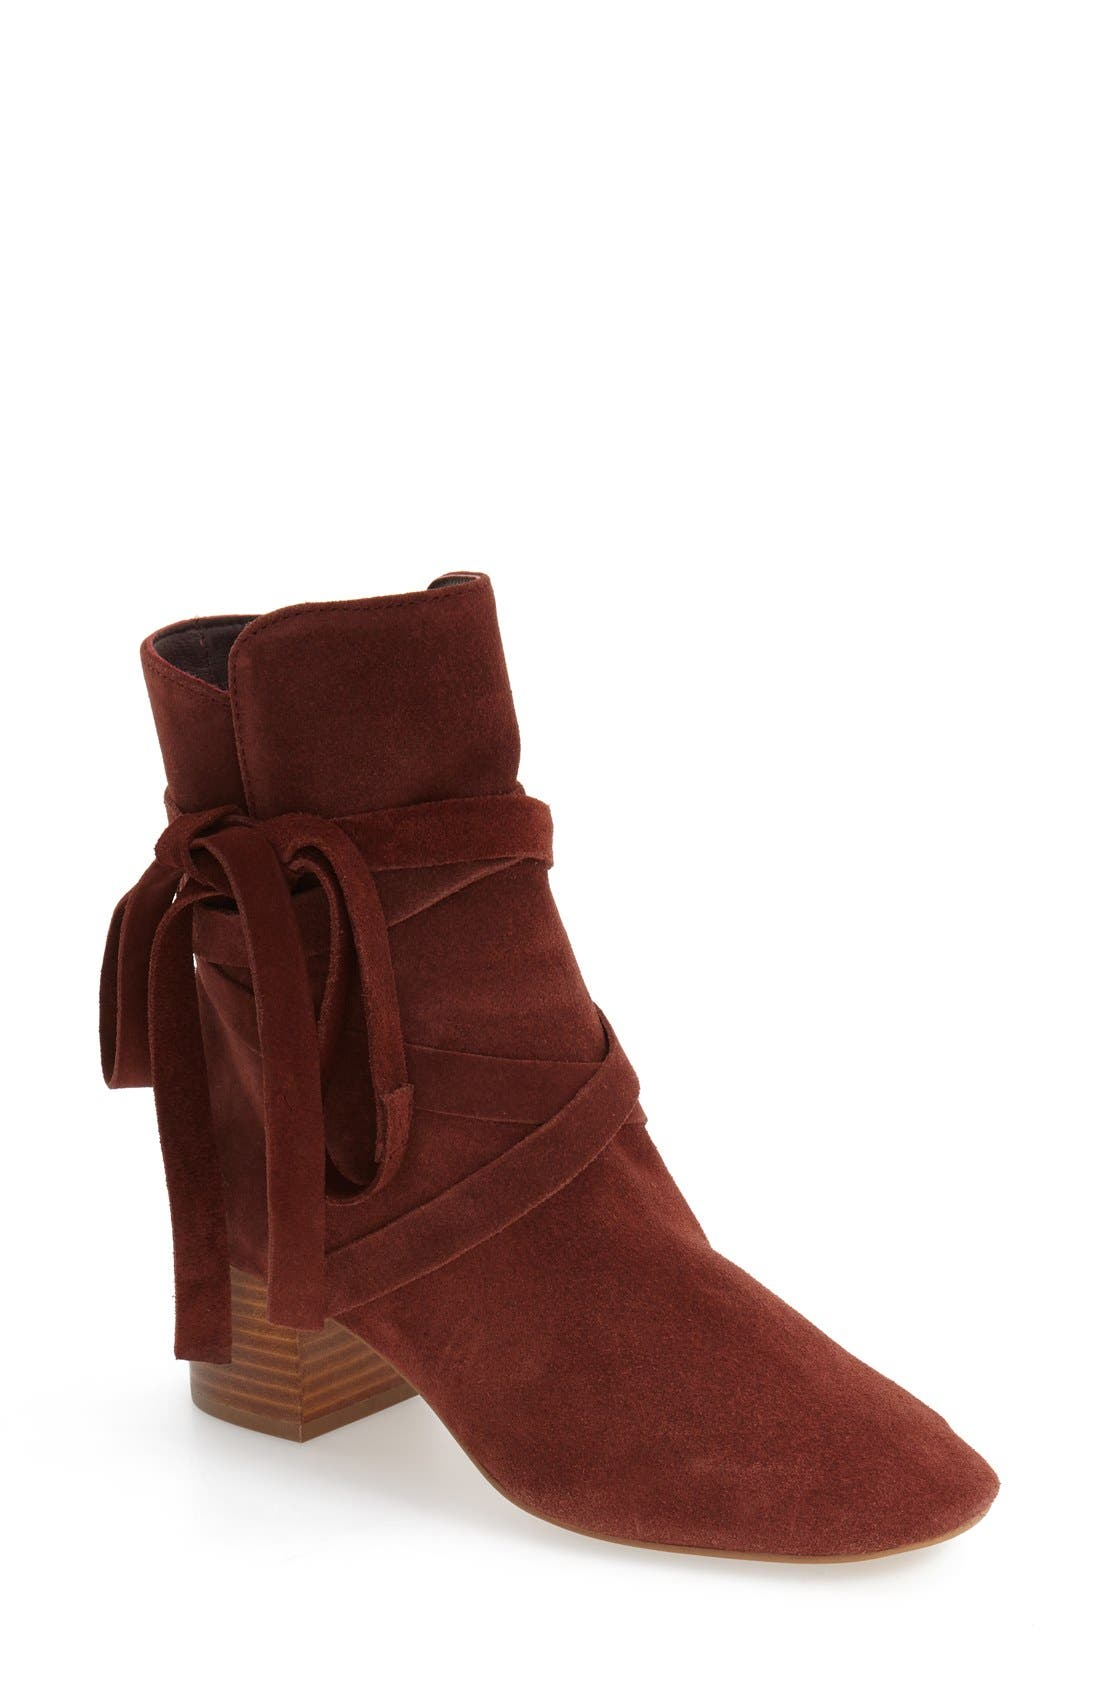 'Anabel' Lace-Up Boots,                             Main thumbnail 1, color,                             220